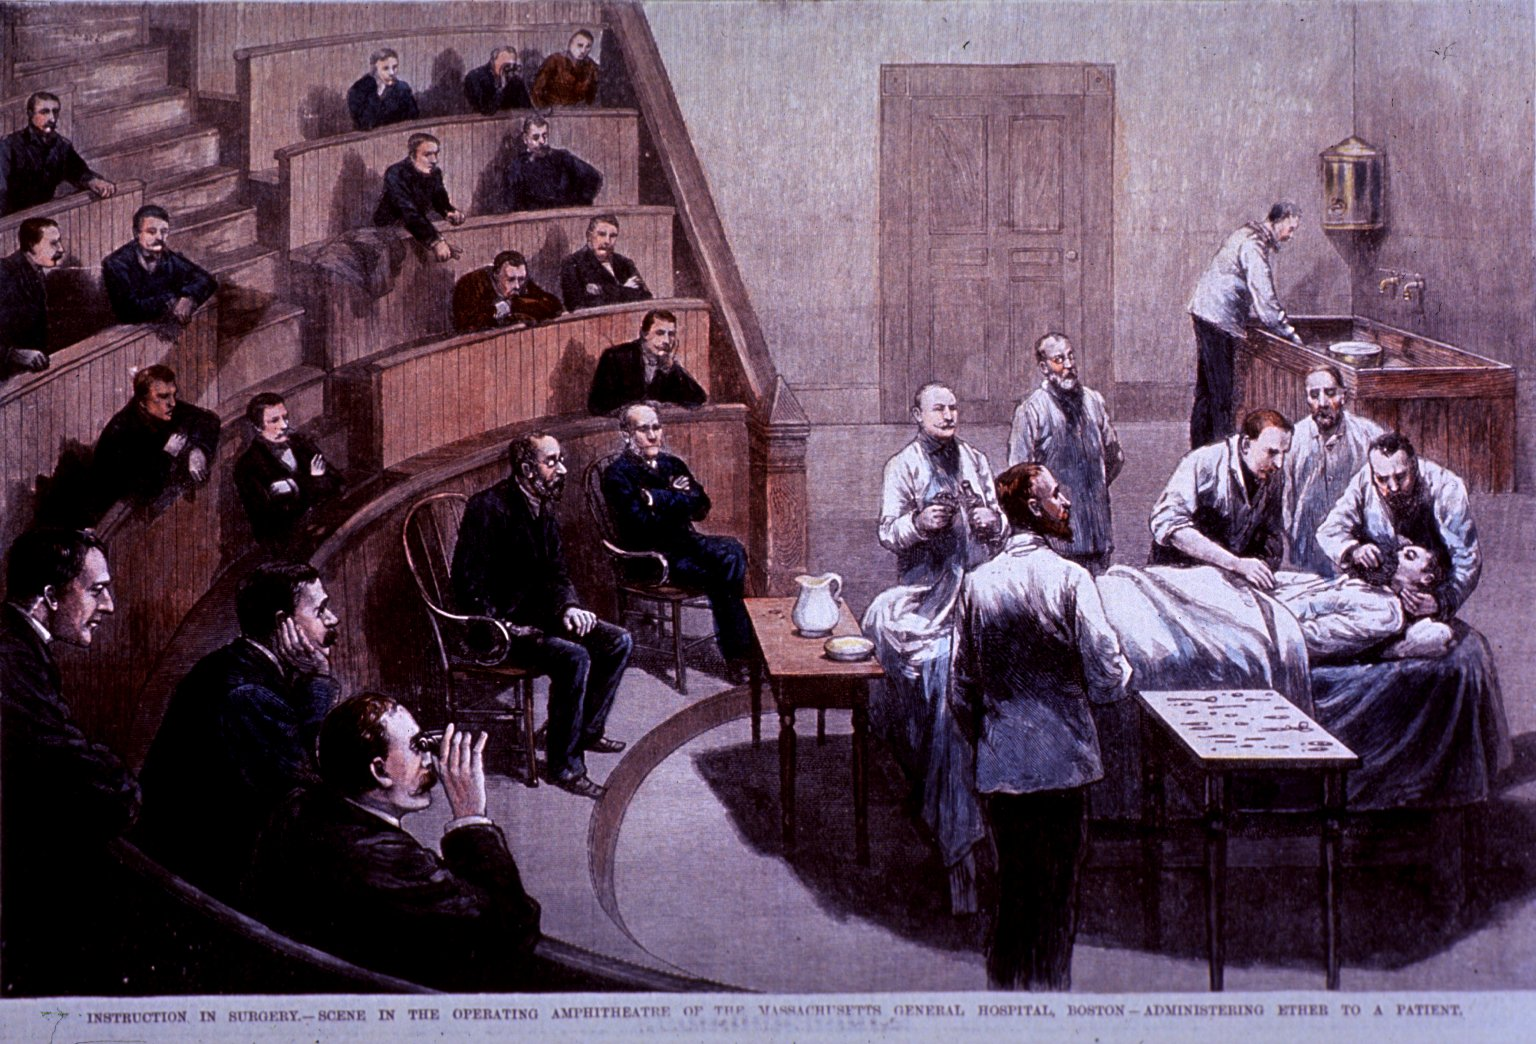 an analysis of the topic of surgery during the renaissance times Teachers' resources on the history of  research grids and timeline tasks for the renaissance  of dealing with them that were available at the time surgery in.